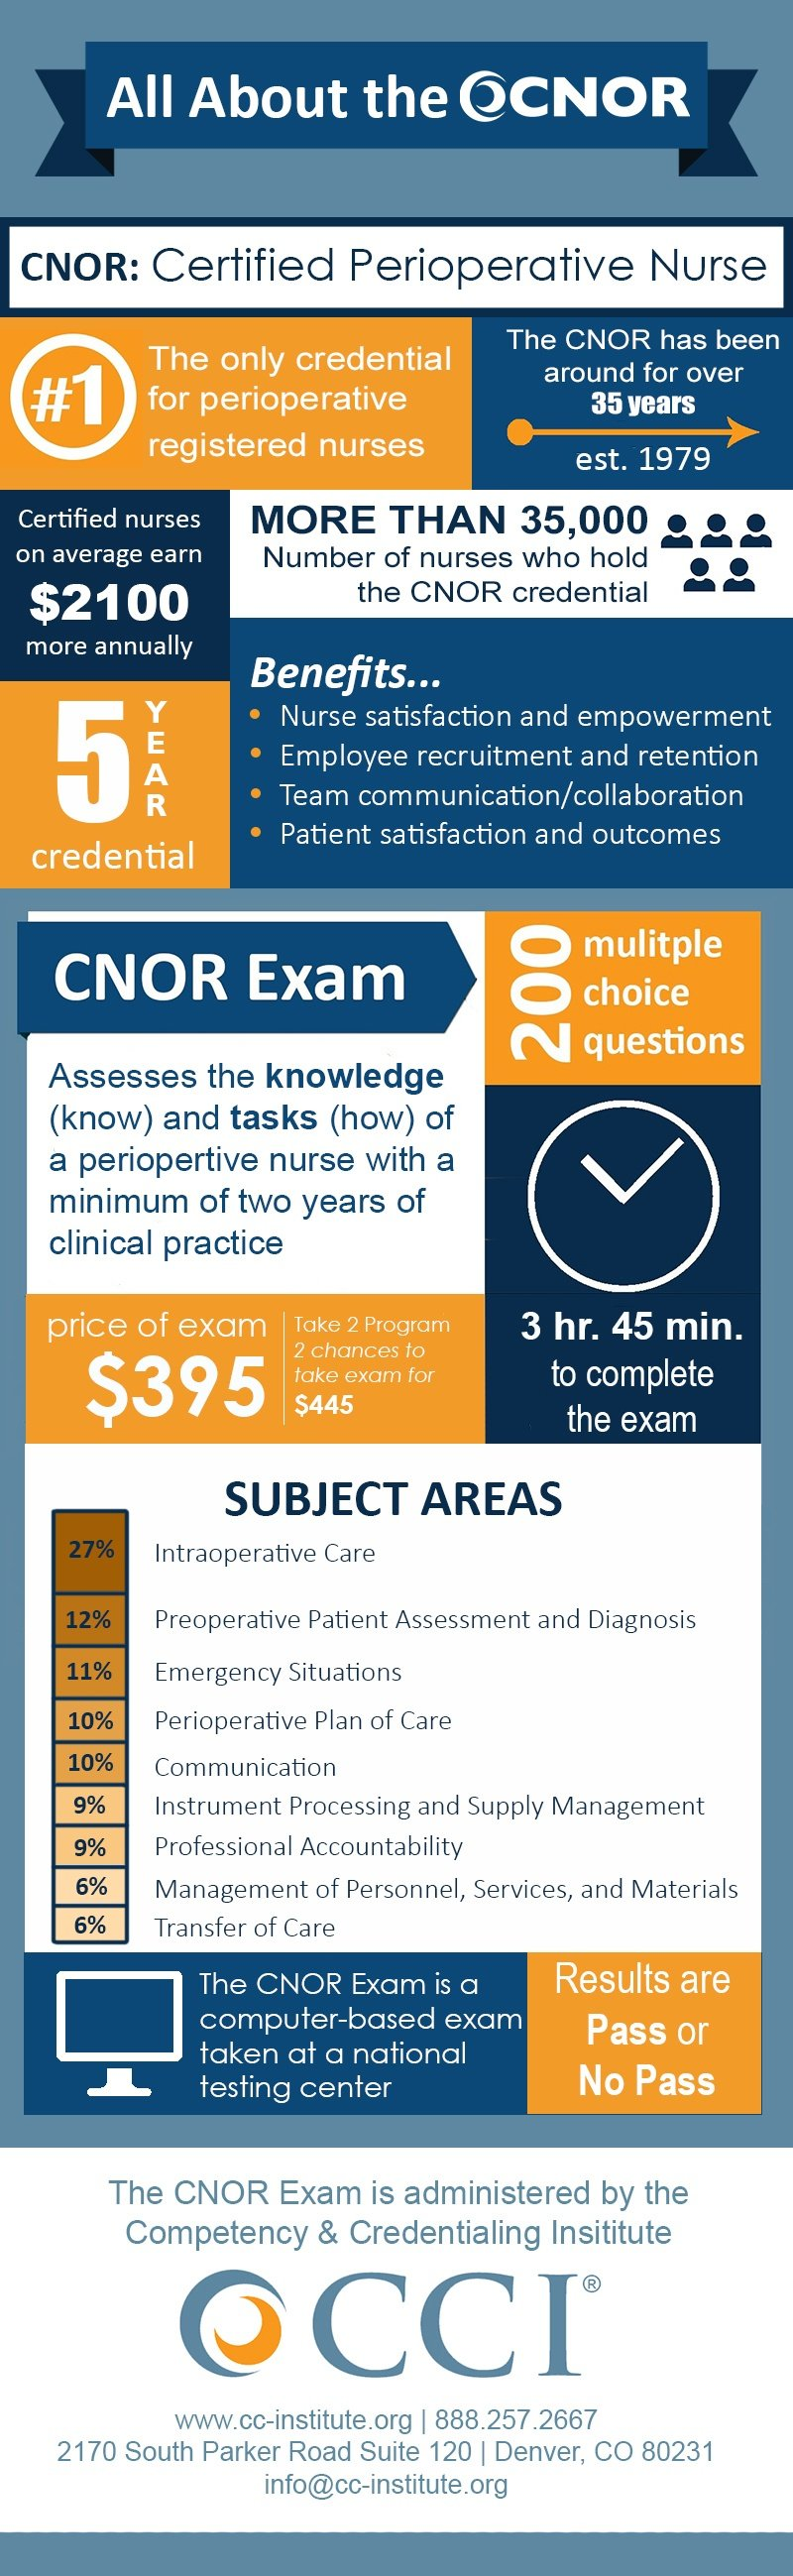 CNOR infographic.jpg